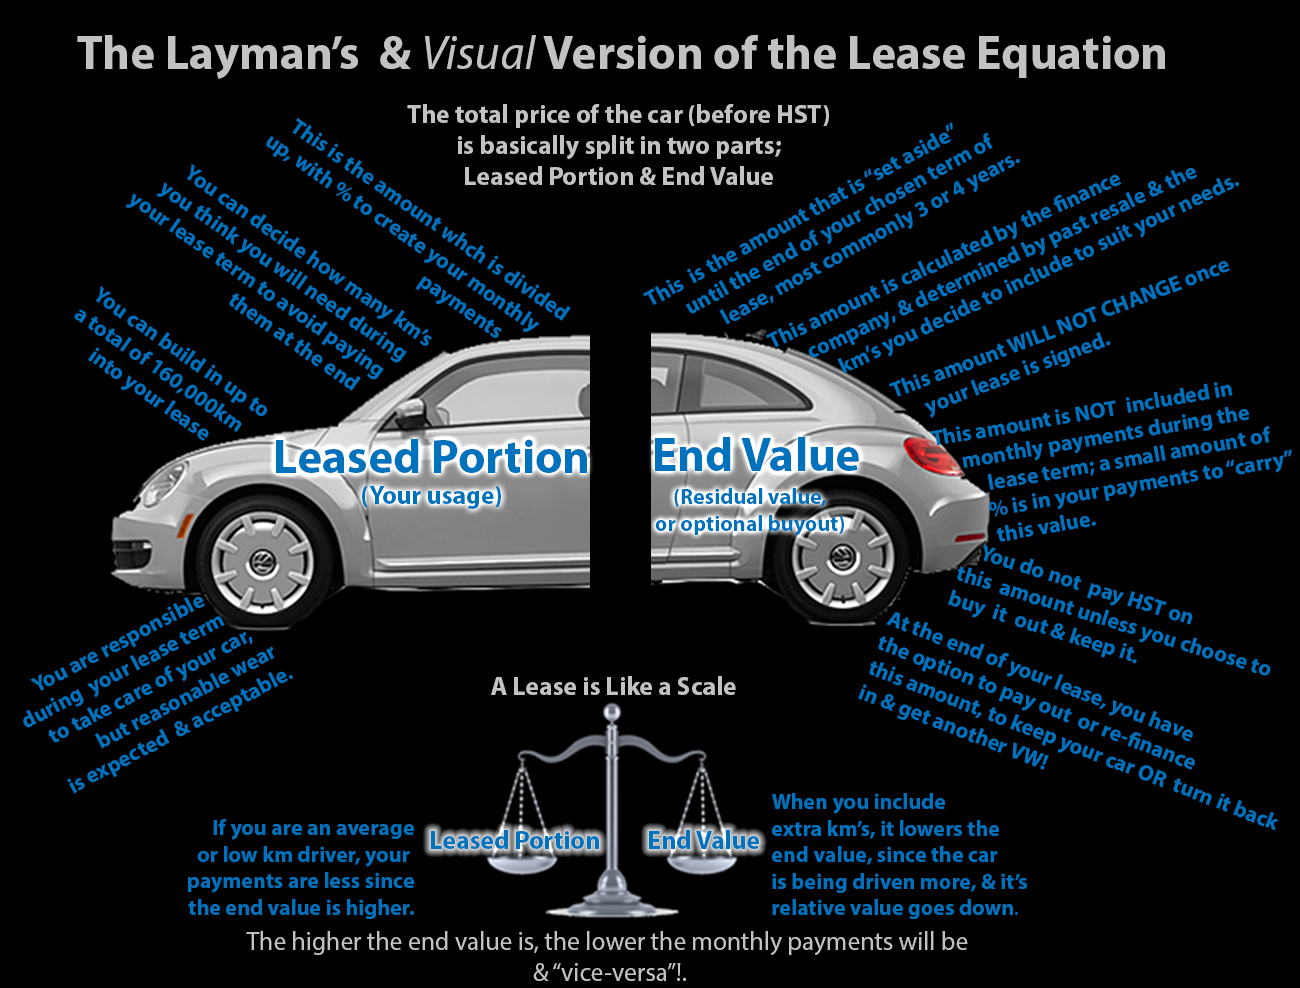 How a lease works visual explanation.